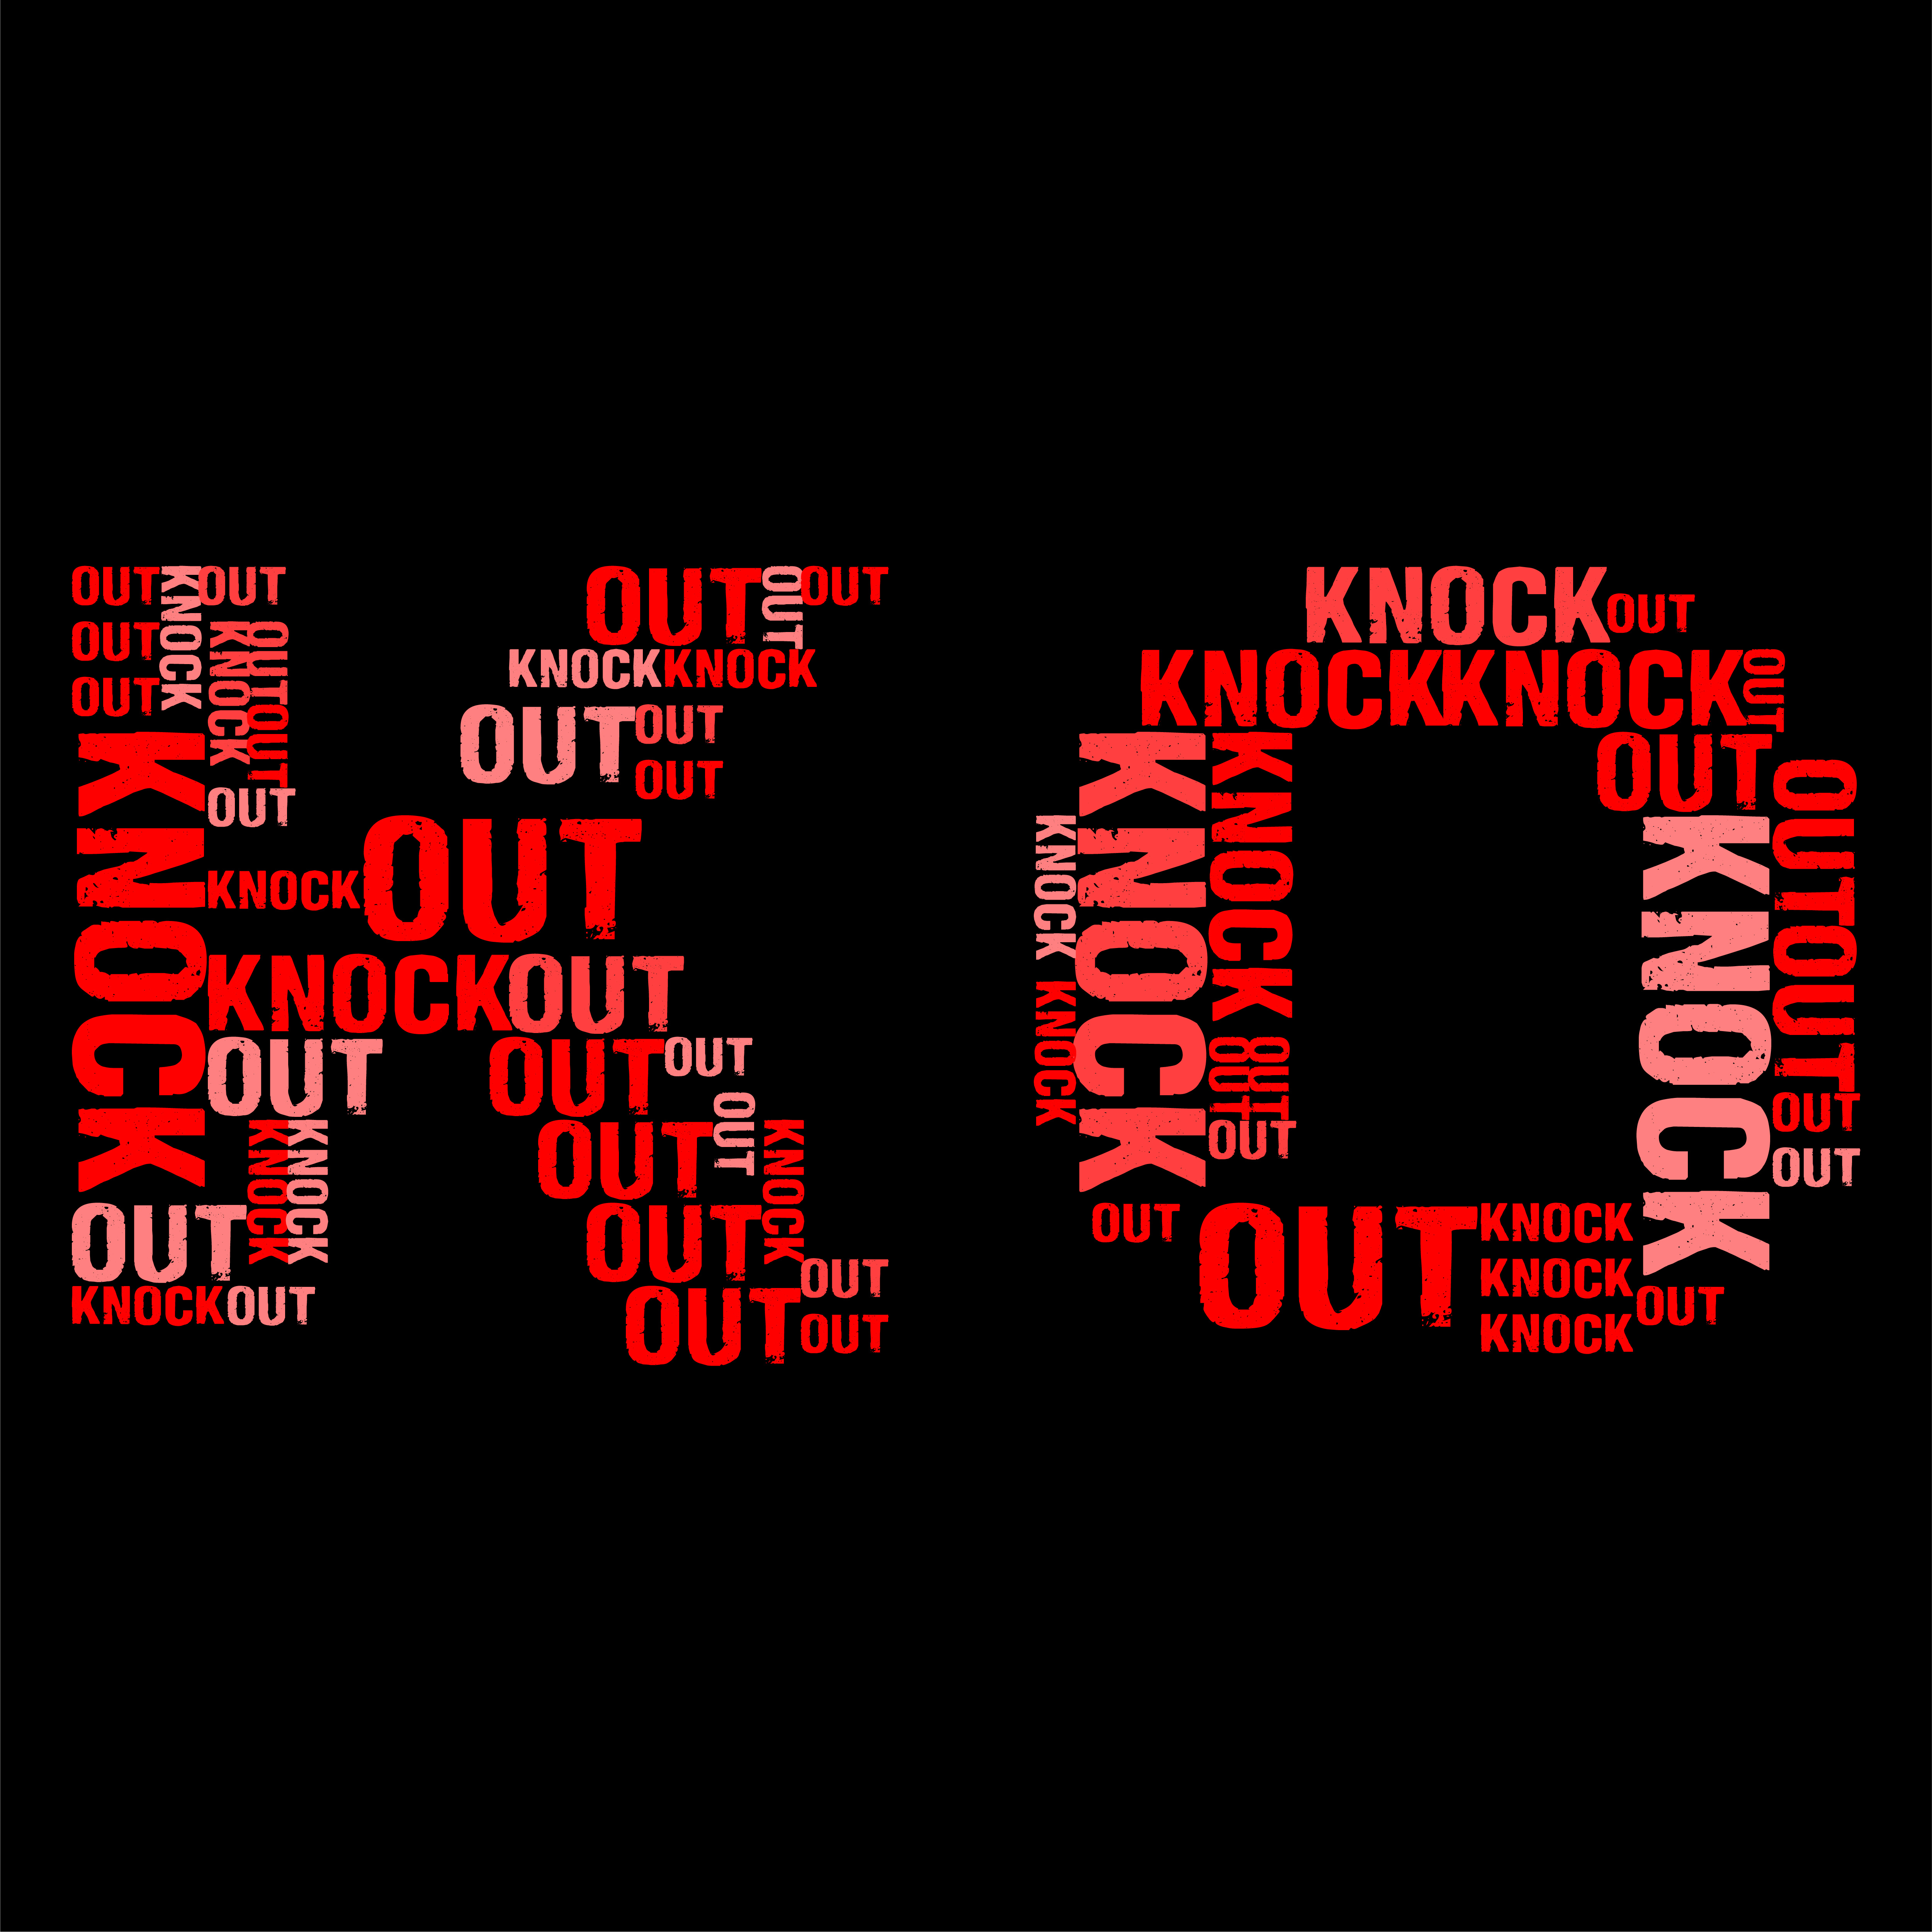 Knock Out Wordcloud Black Background Vector illustration Download Free Vectors Clipart